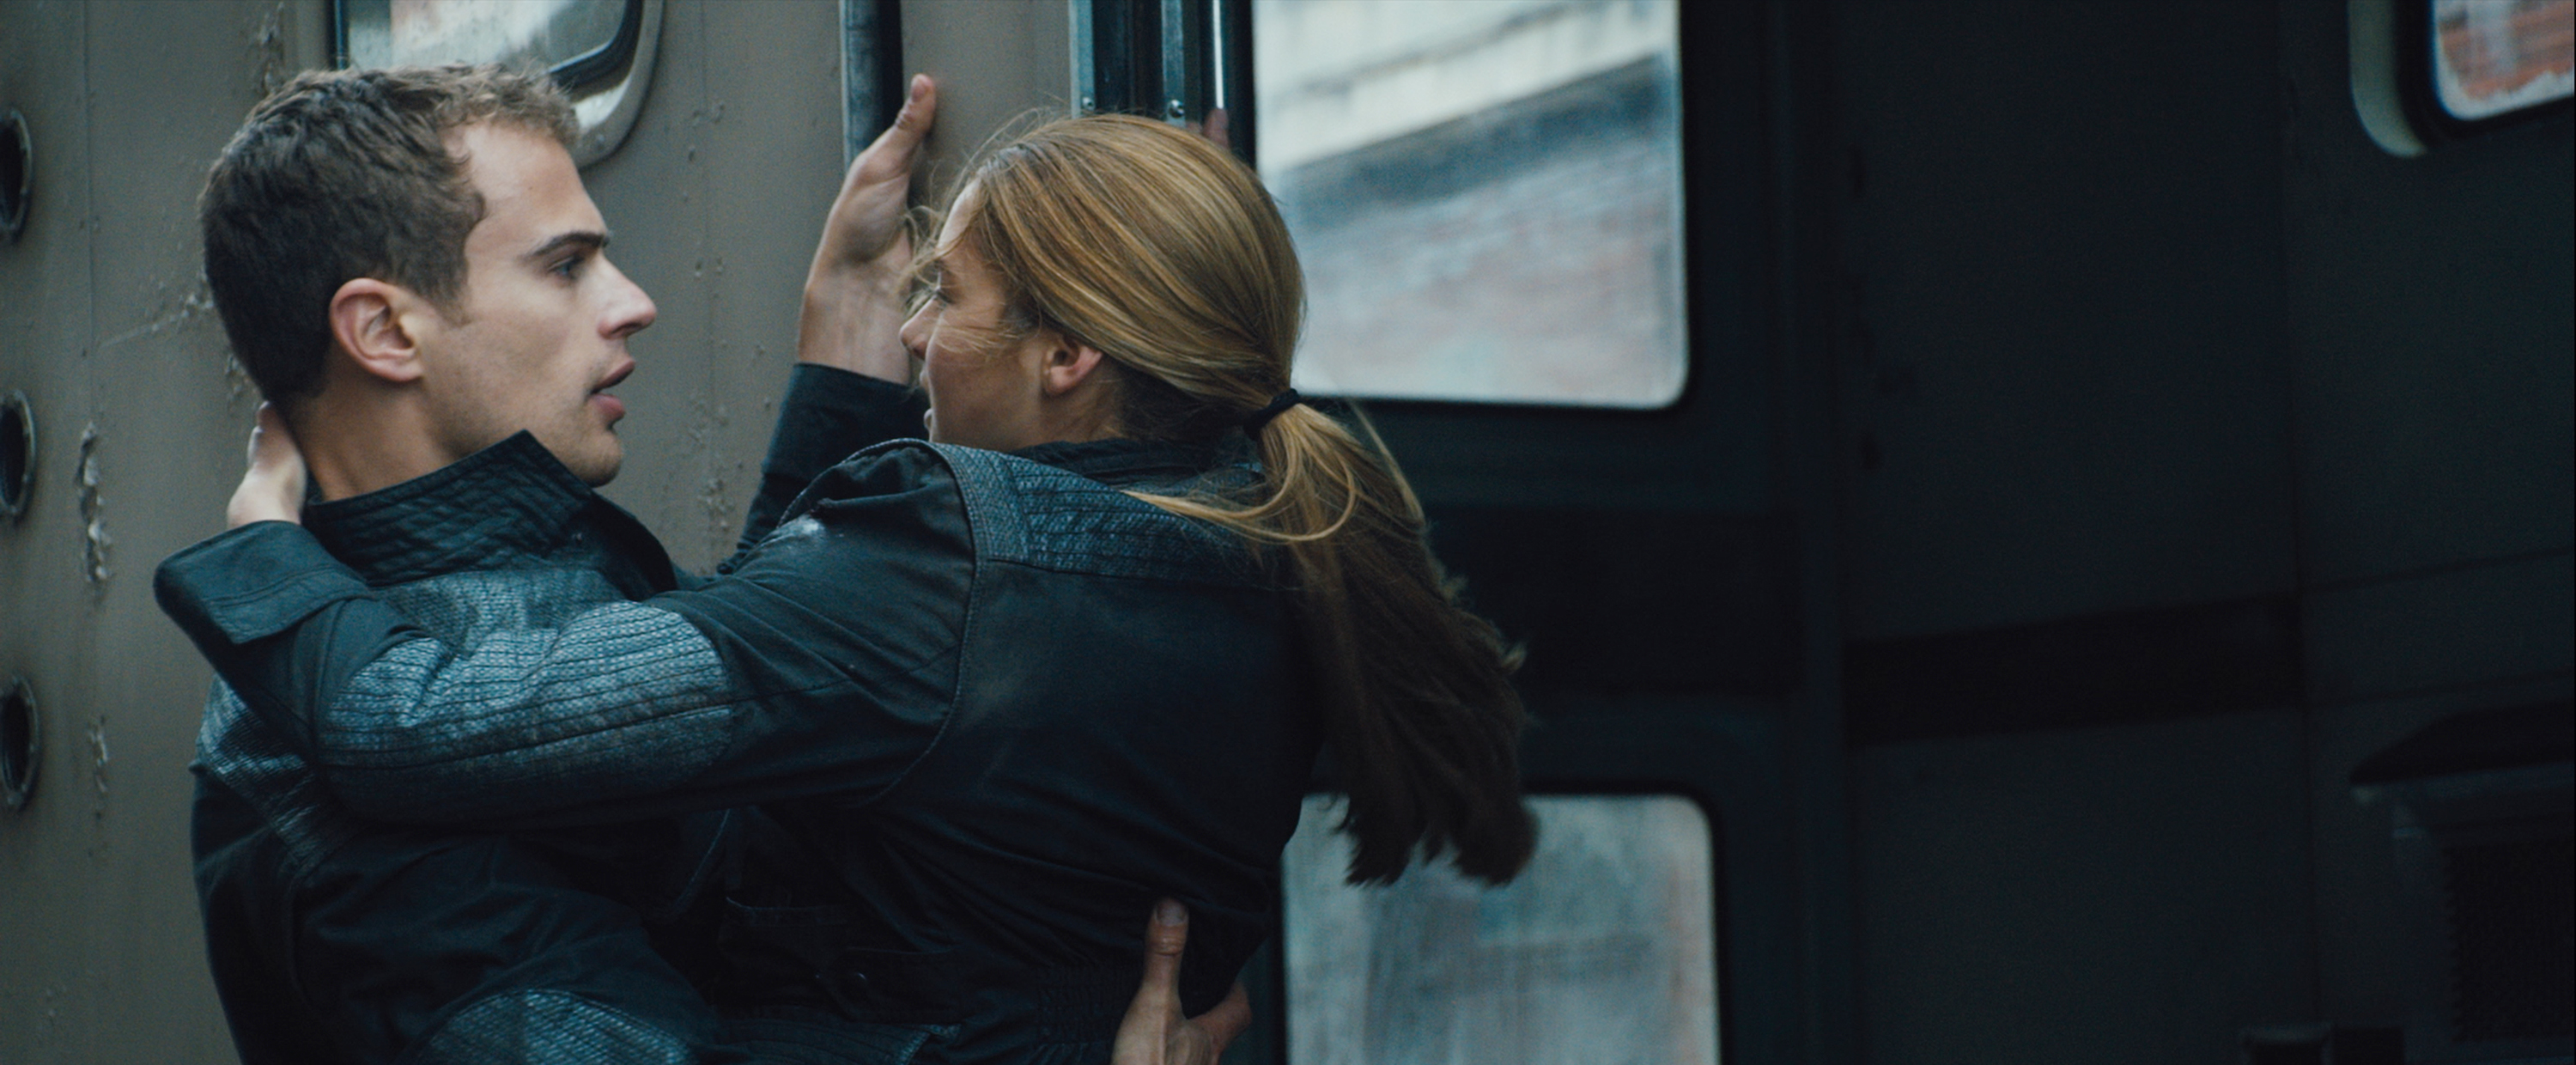 Theo James and Shailene Woodley in Divergent - HeyUGuys